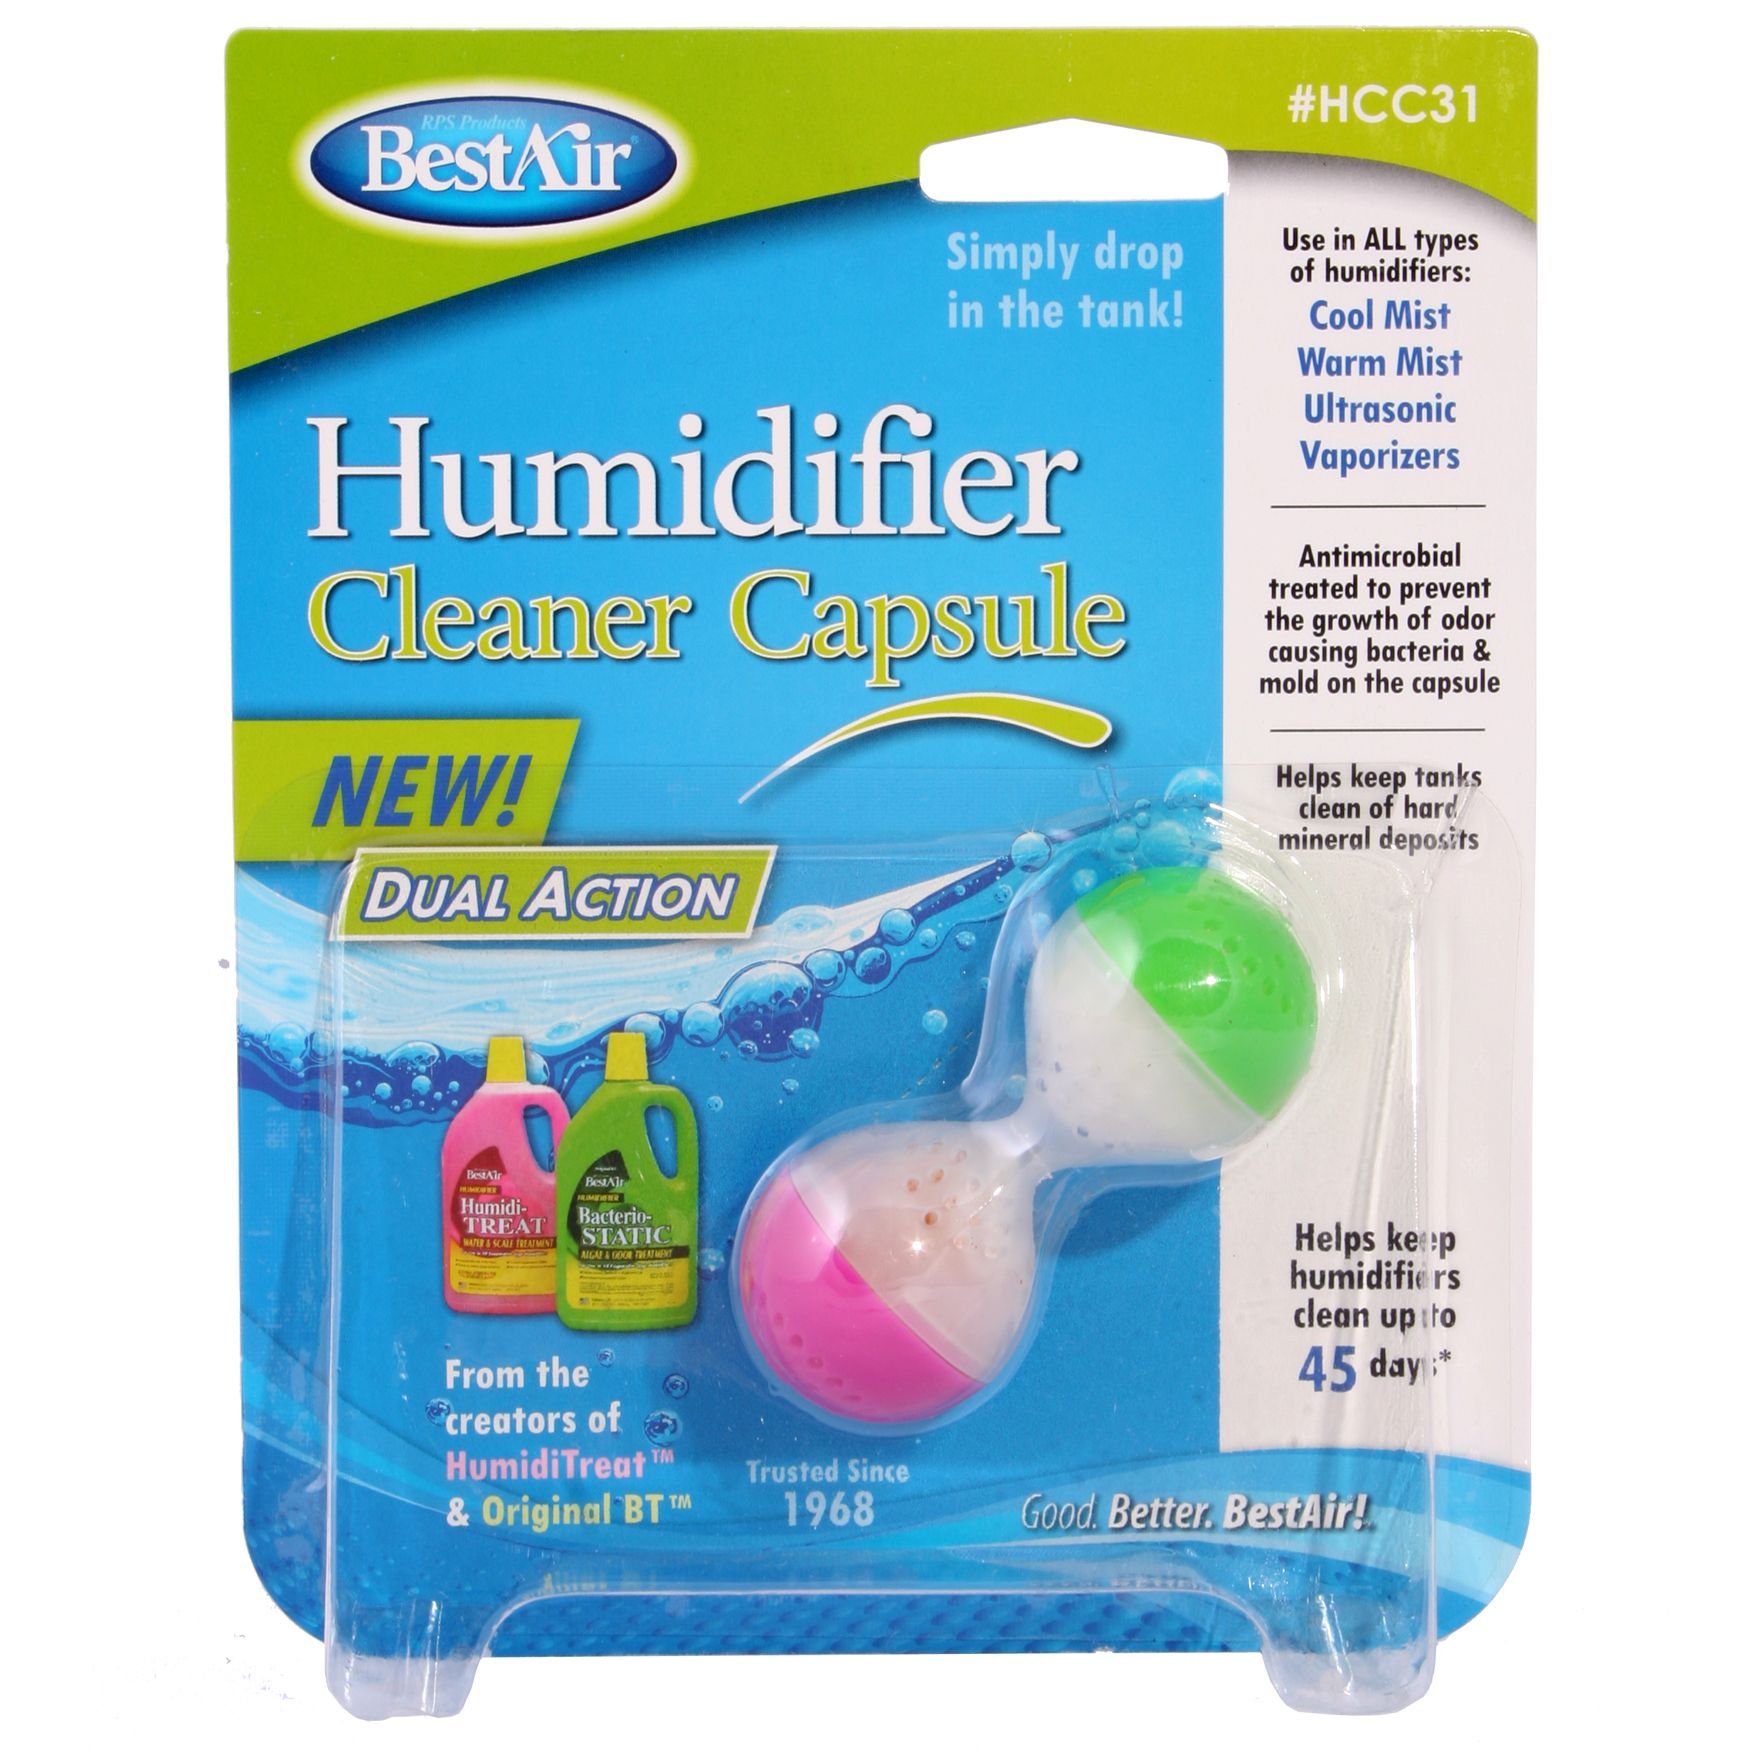 Humidifier Cleaner Capsule